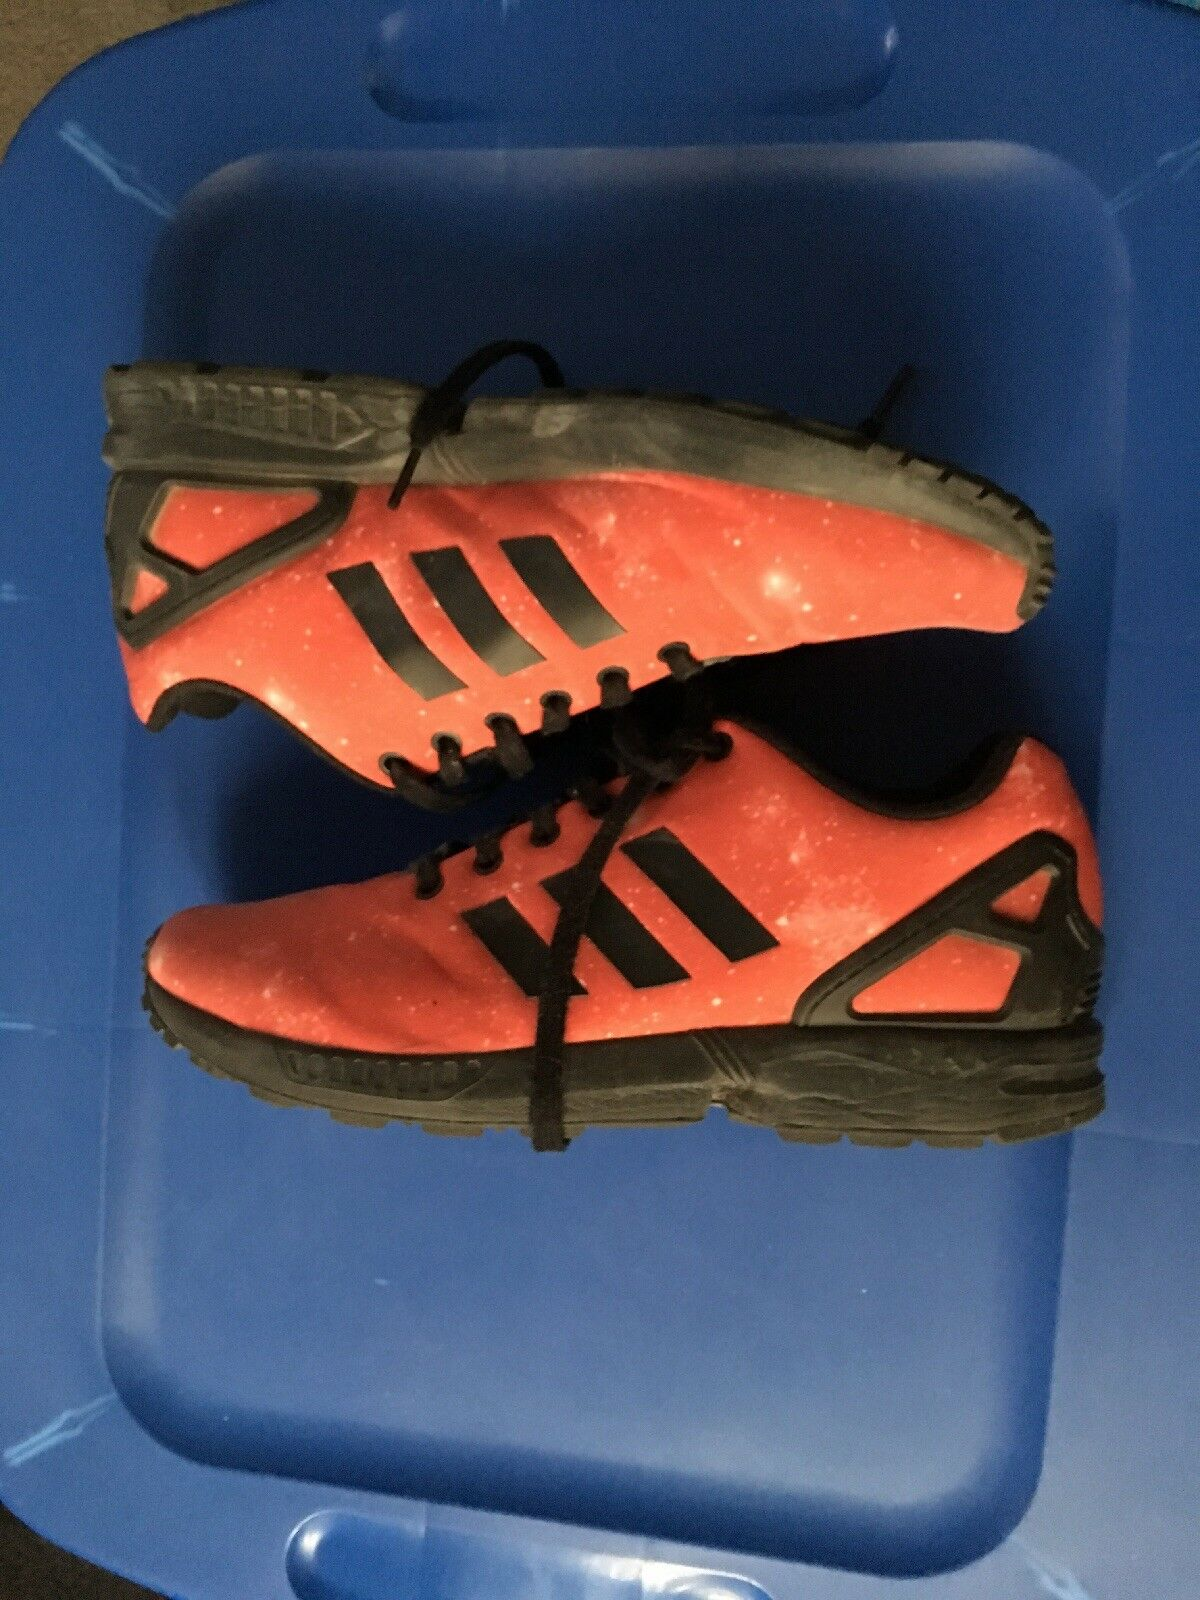 Adidas zx zx Adidas zx Adidas flux rosso And Nero Size 10 19267a   e31d30